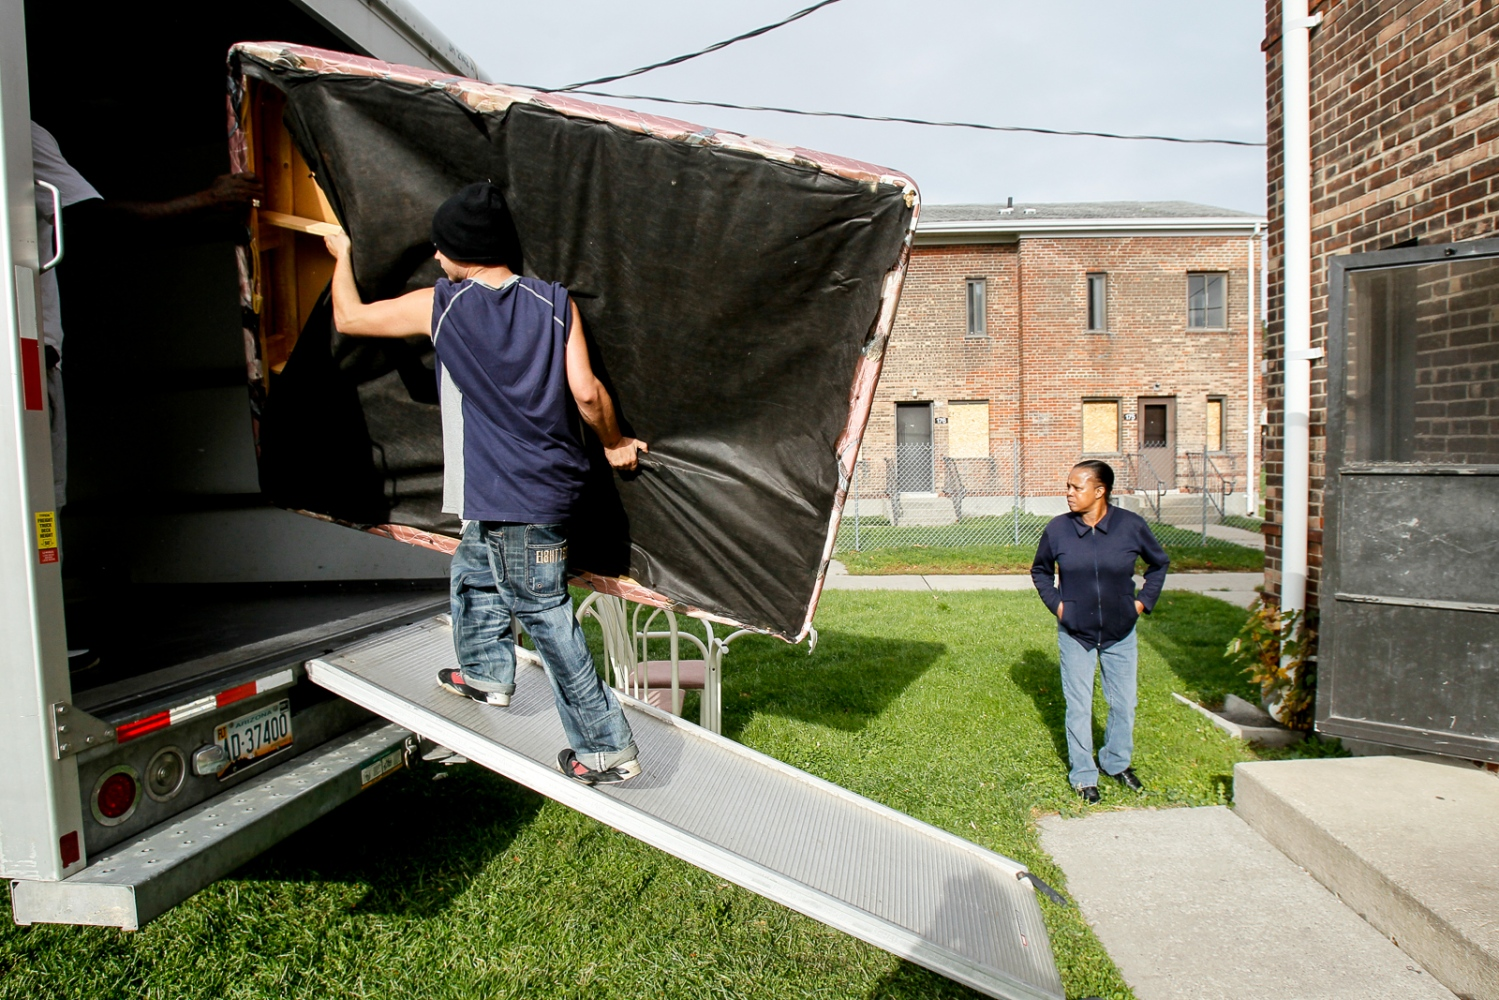 Casandra Cofie watches as Donald Smith carries a mattress out of her daughter, Kasandra Cofie's, apartment in the Brand Whitlock homes on Monday, Nov. 21, 2011.